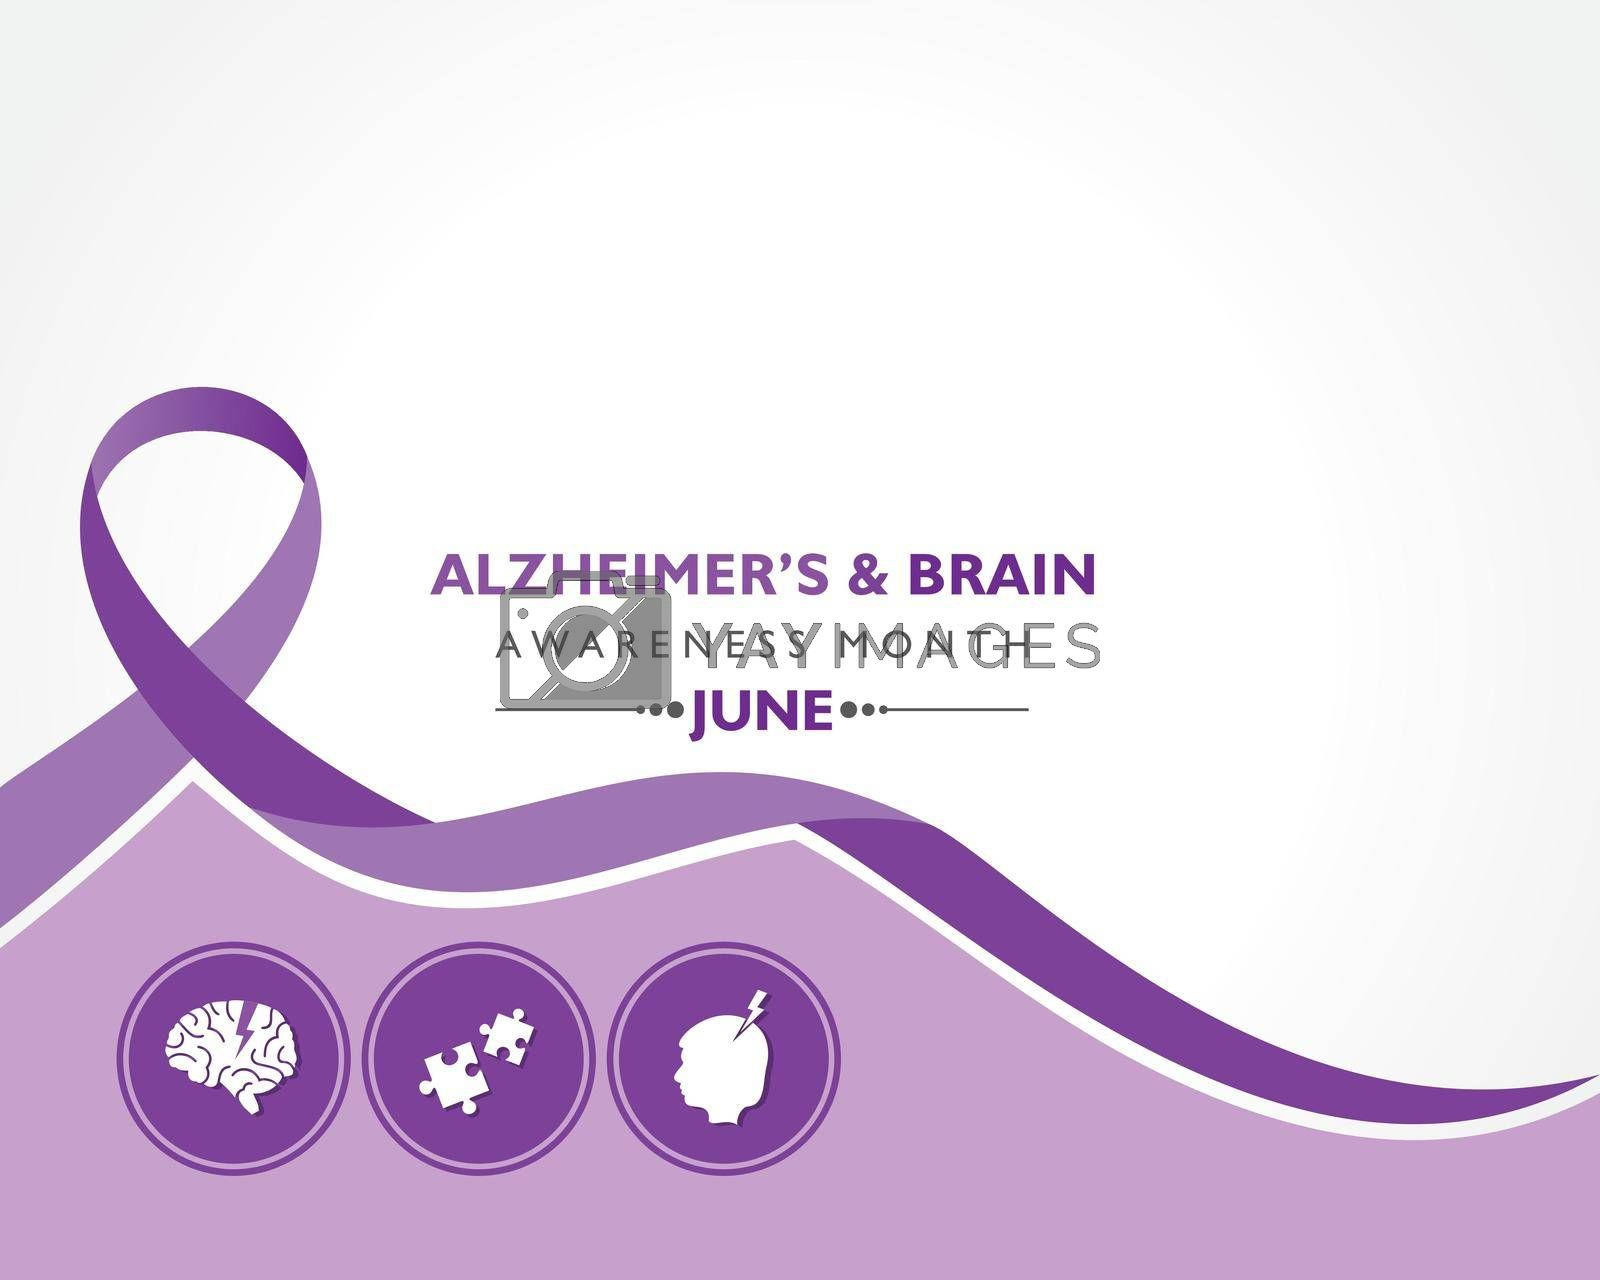 Royalty free image of Vector Illustration of Alzheimer's and Brain Awareness Month observed in June. by graphicsdunia4you